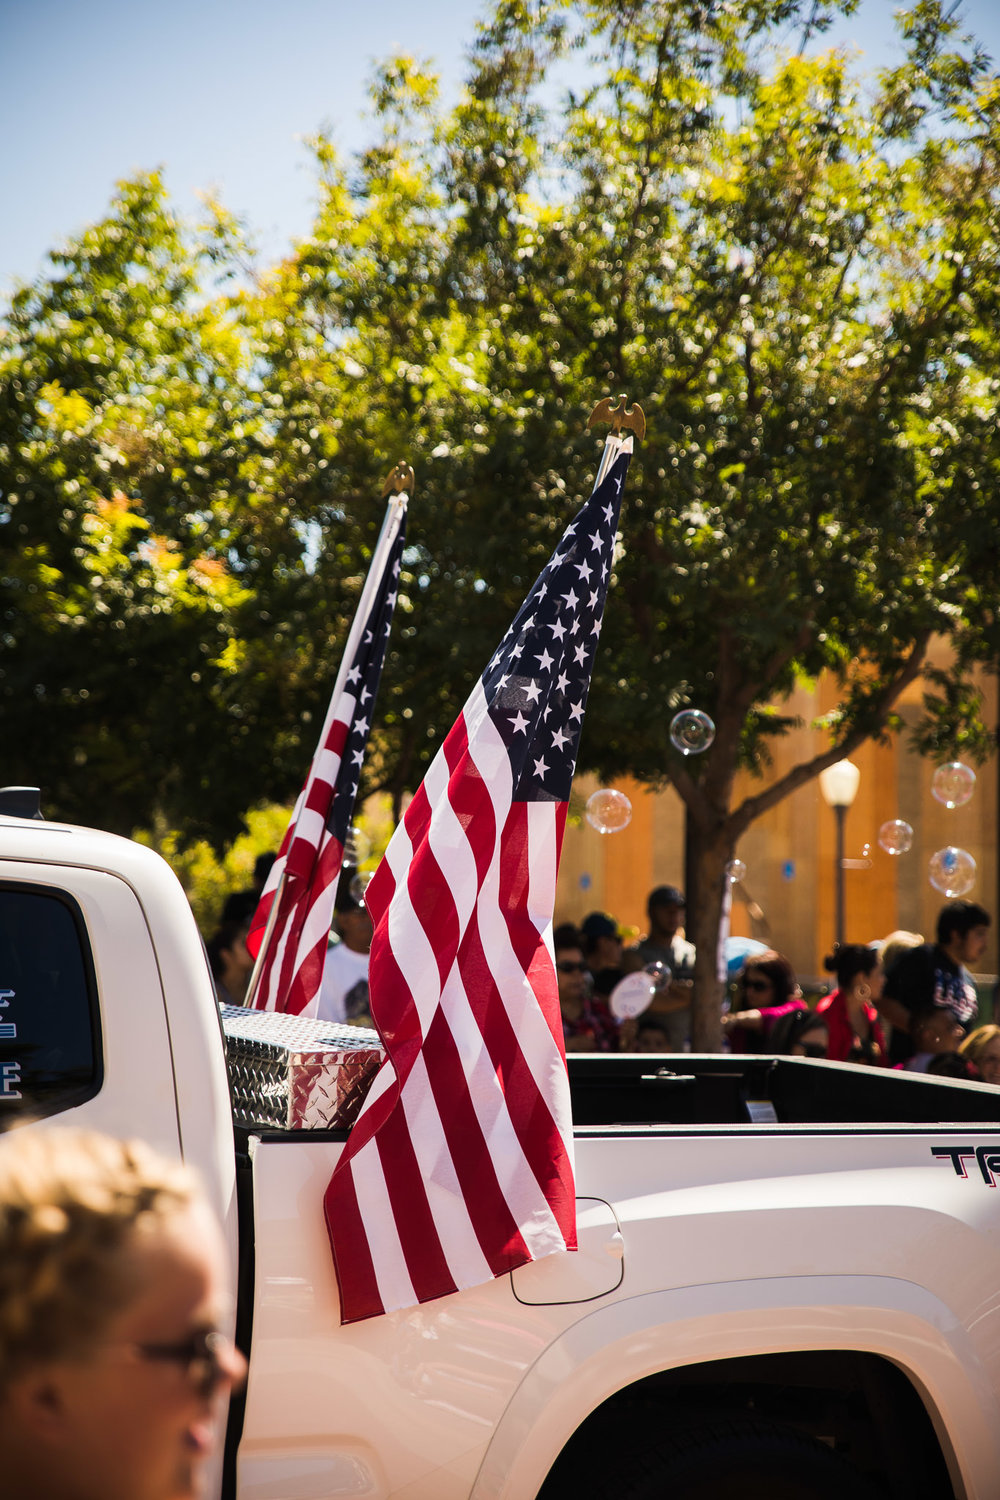 Archer_Inspired_Photography_Morgan_Hill_California_4th_of_july_parade-117.jpg